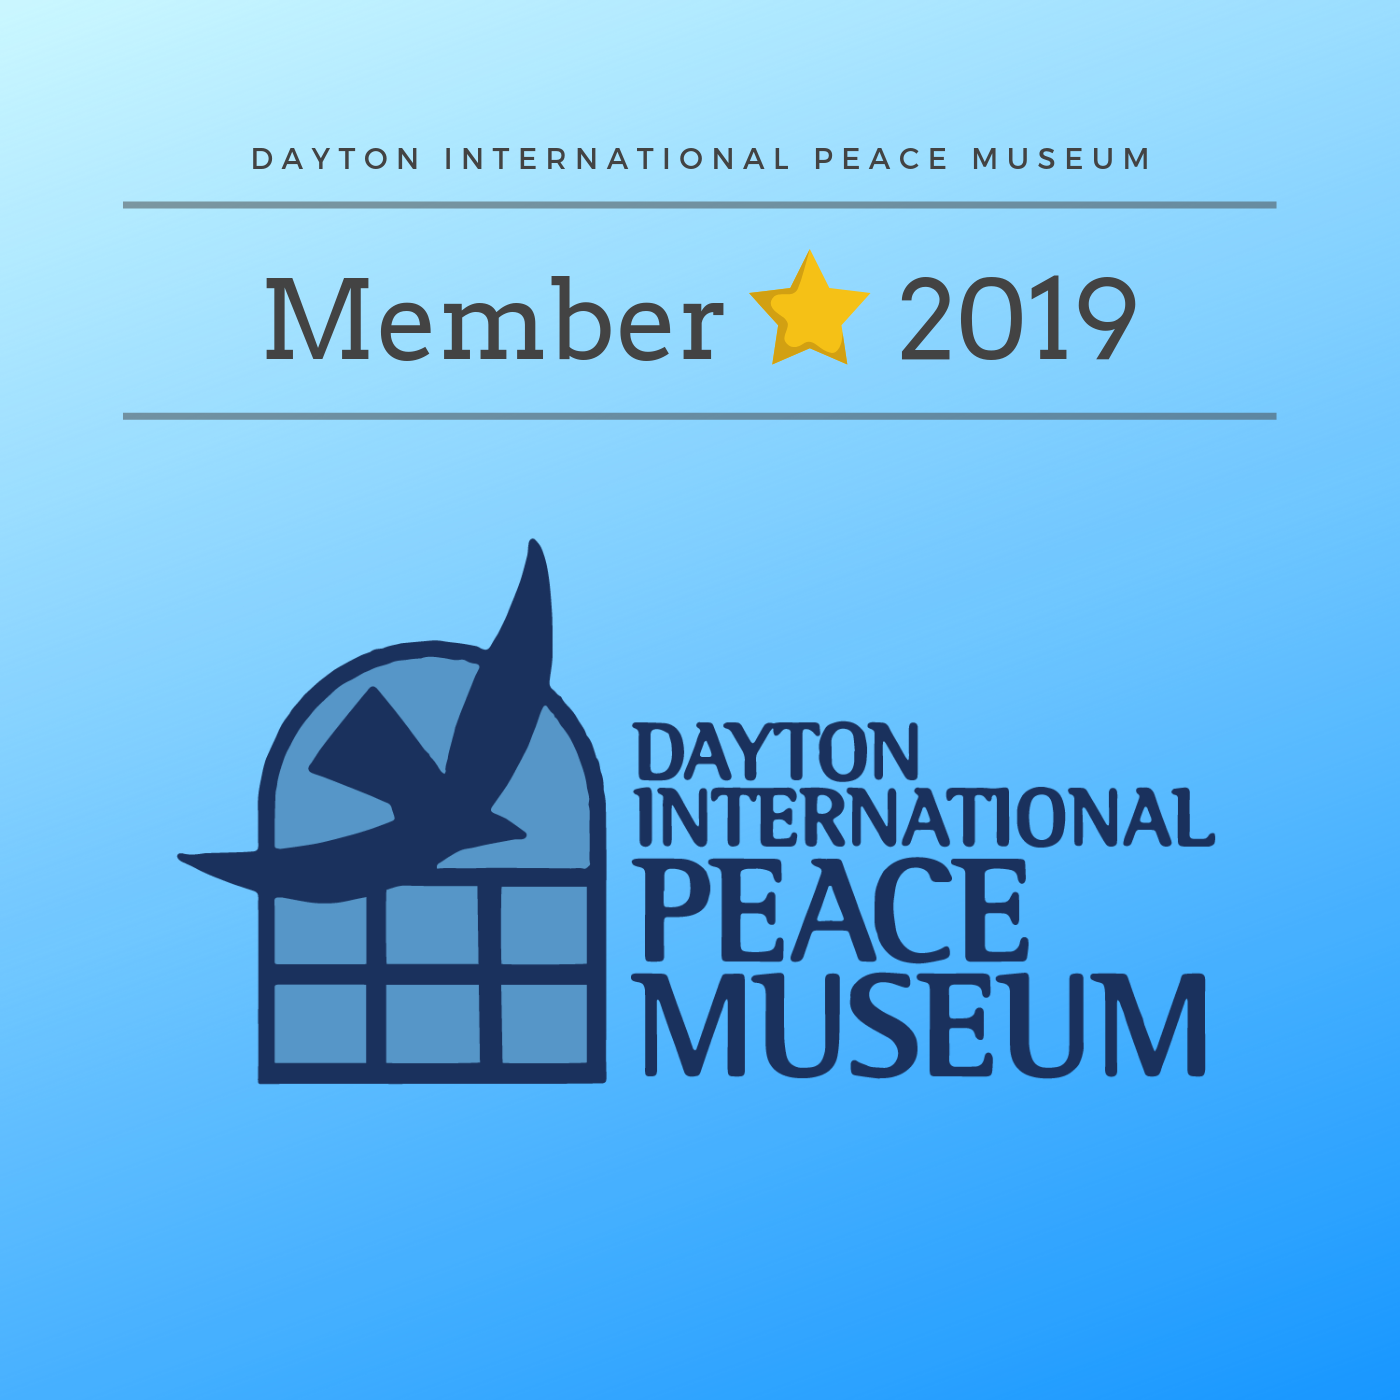 Annual Membership:  Pledge any amount annually to be a member and receive yearly car decal, sticker, free museum admission, and discounts on special events and gifts.